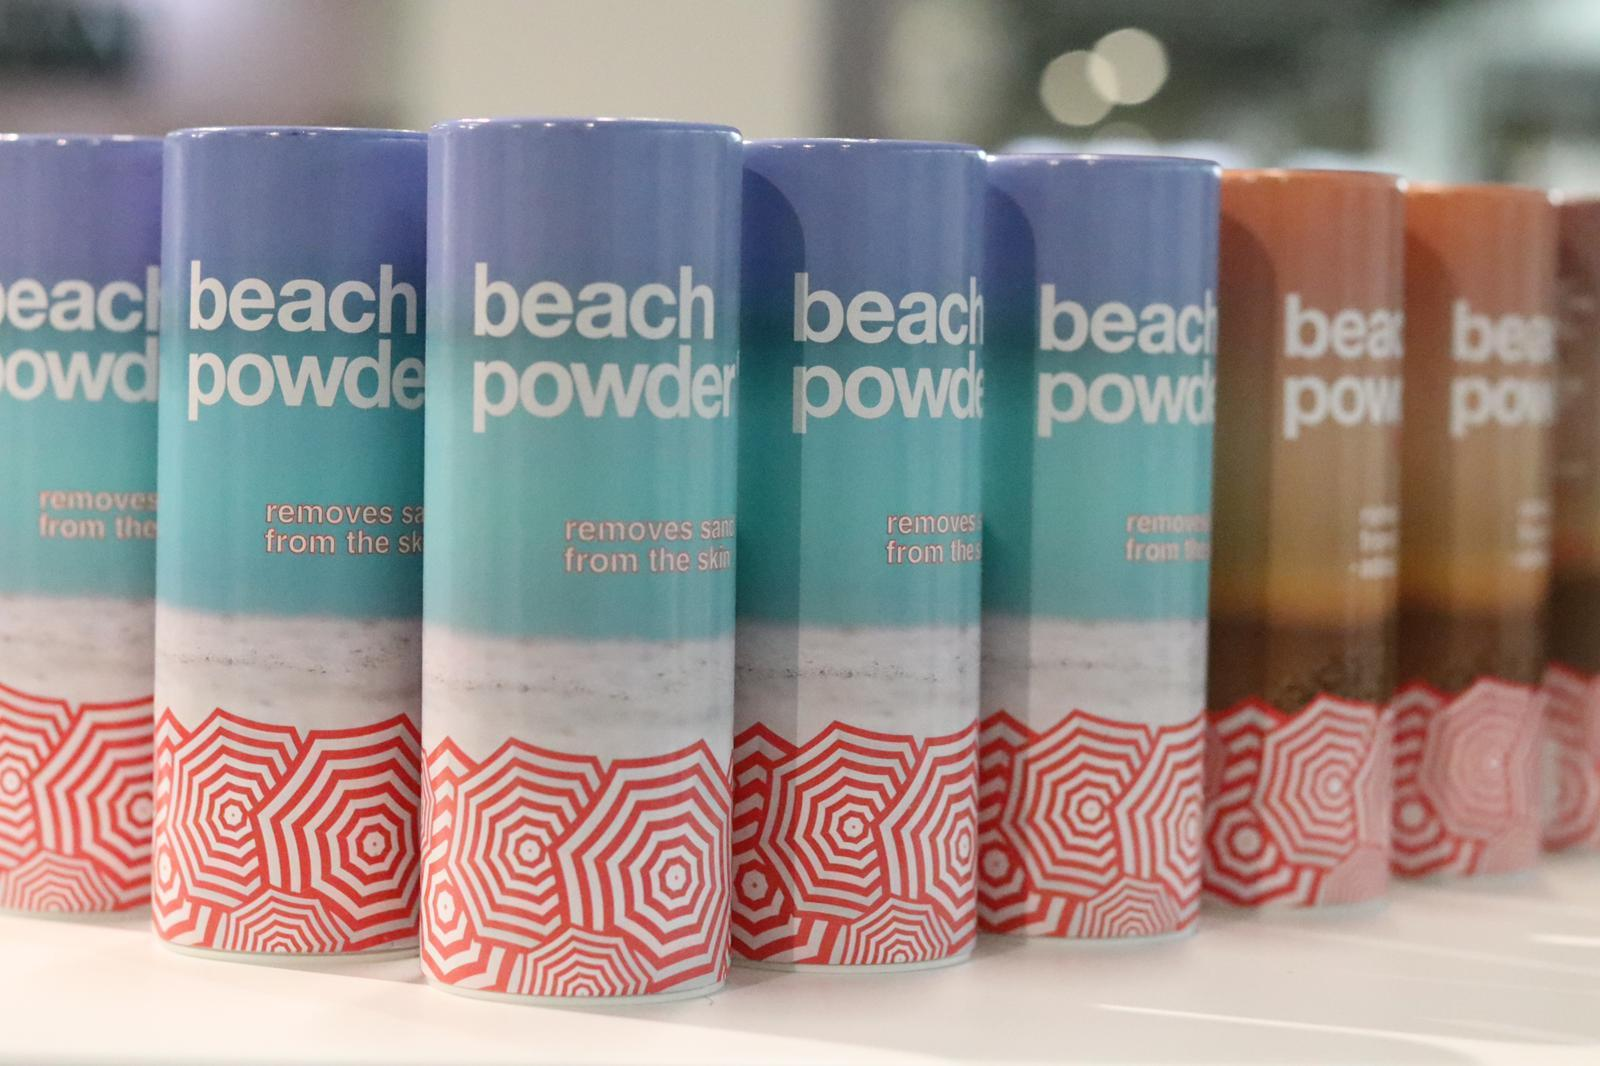 Beachpowder